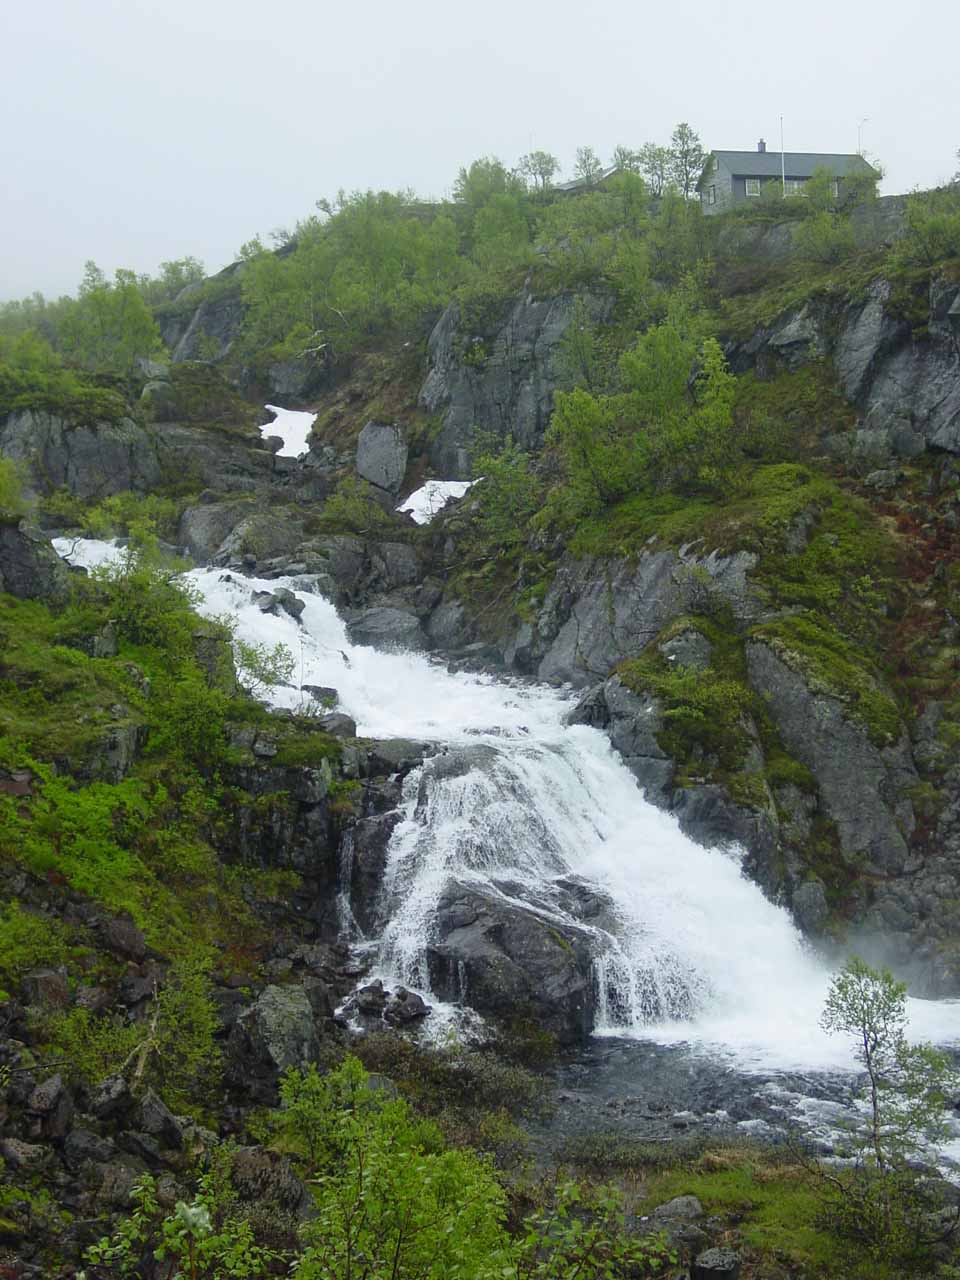 One of the waterfalls en route to the moors between Sauda and Røldal